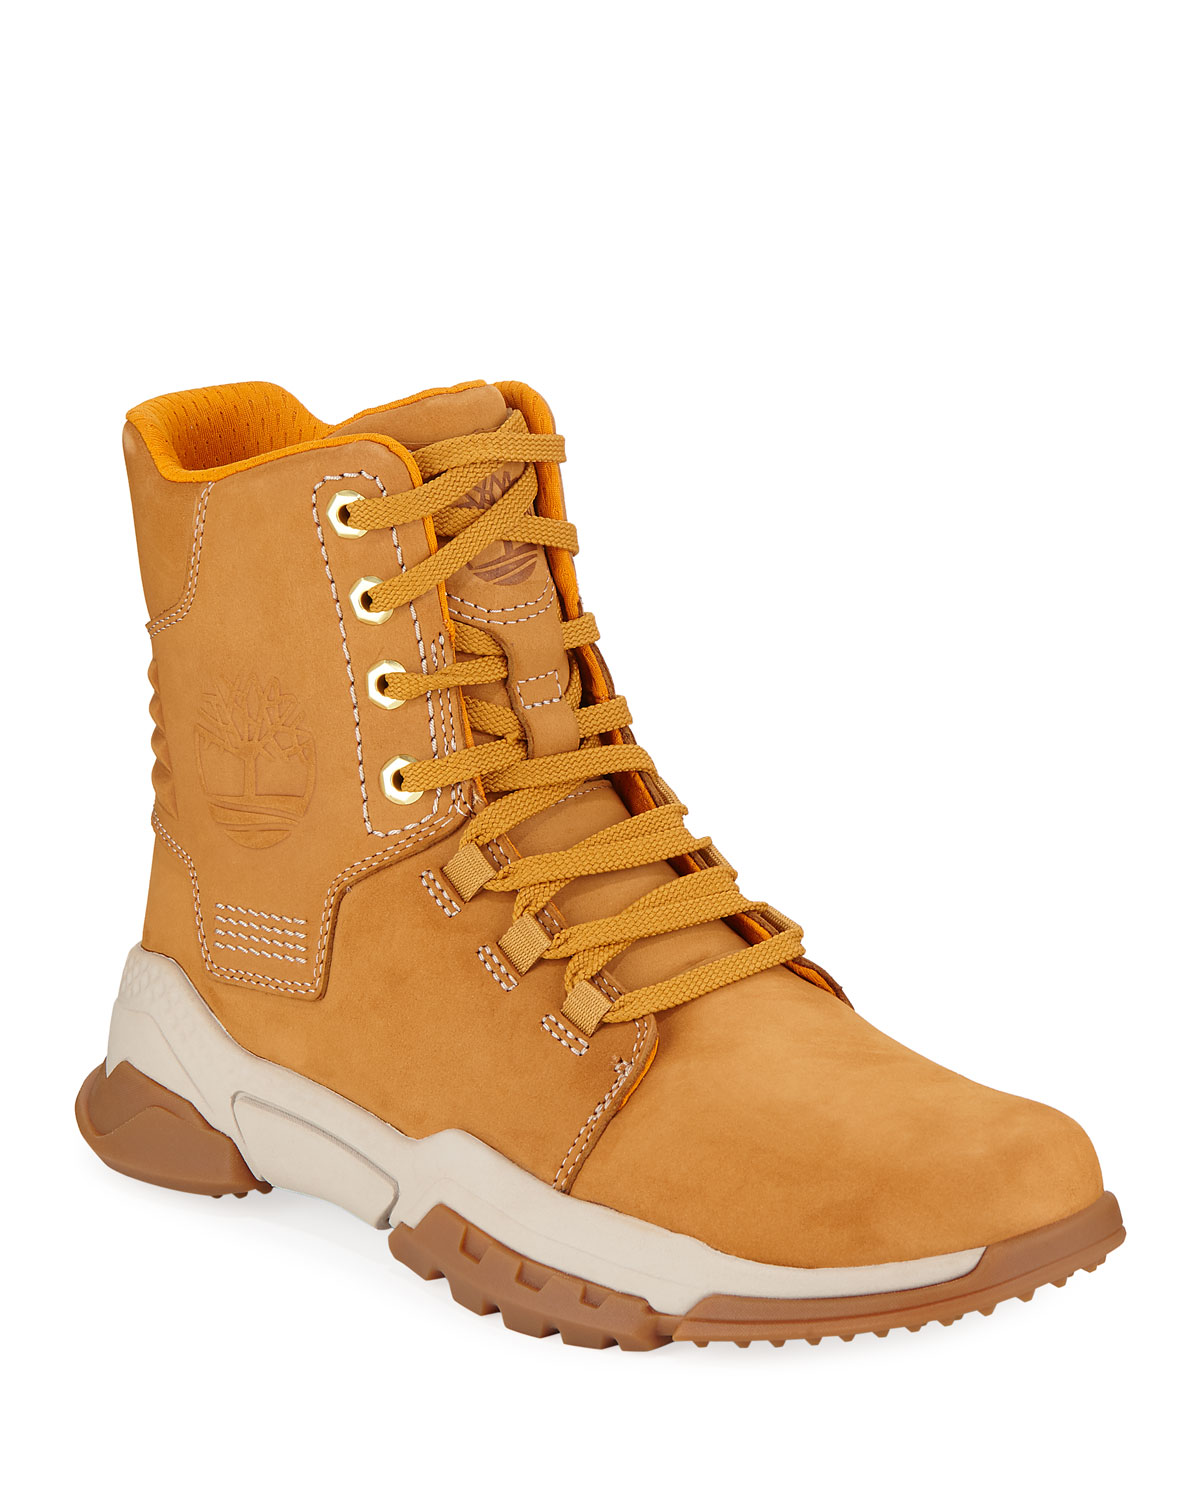 efad31453a3f Timberland Men s City Force Reveal Leather Boots